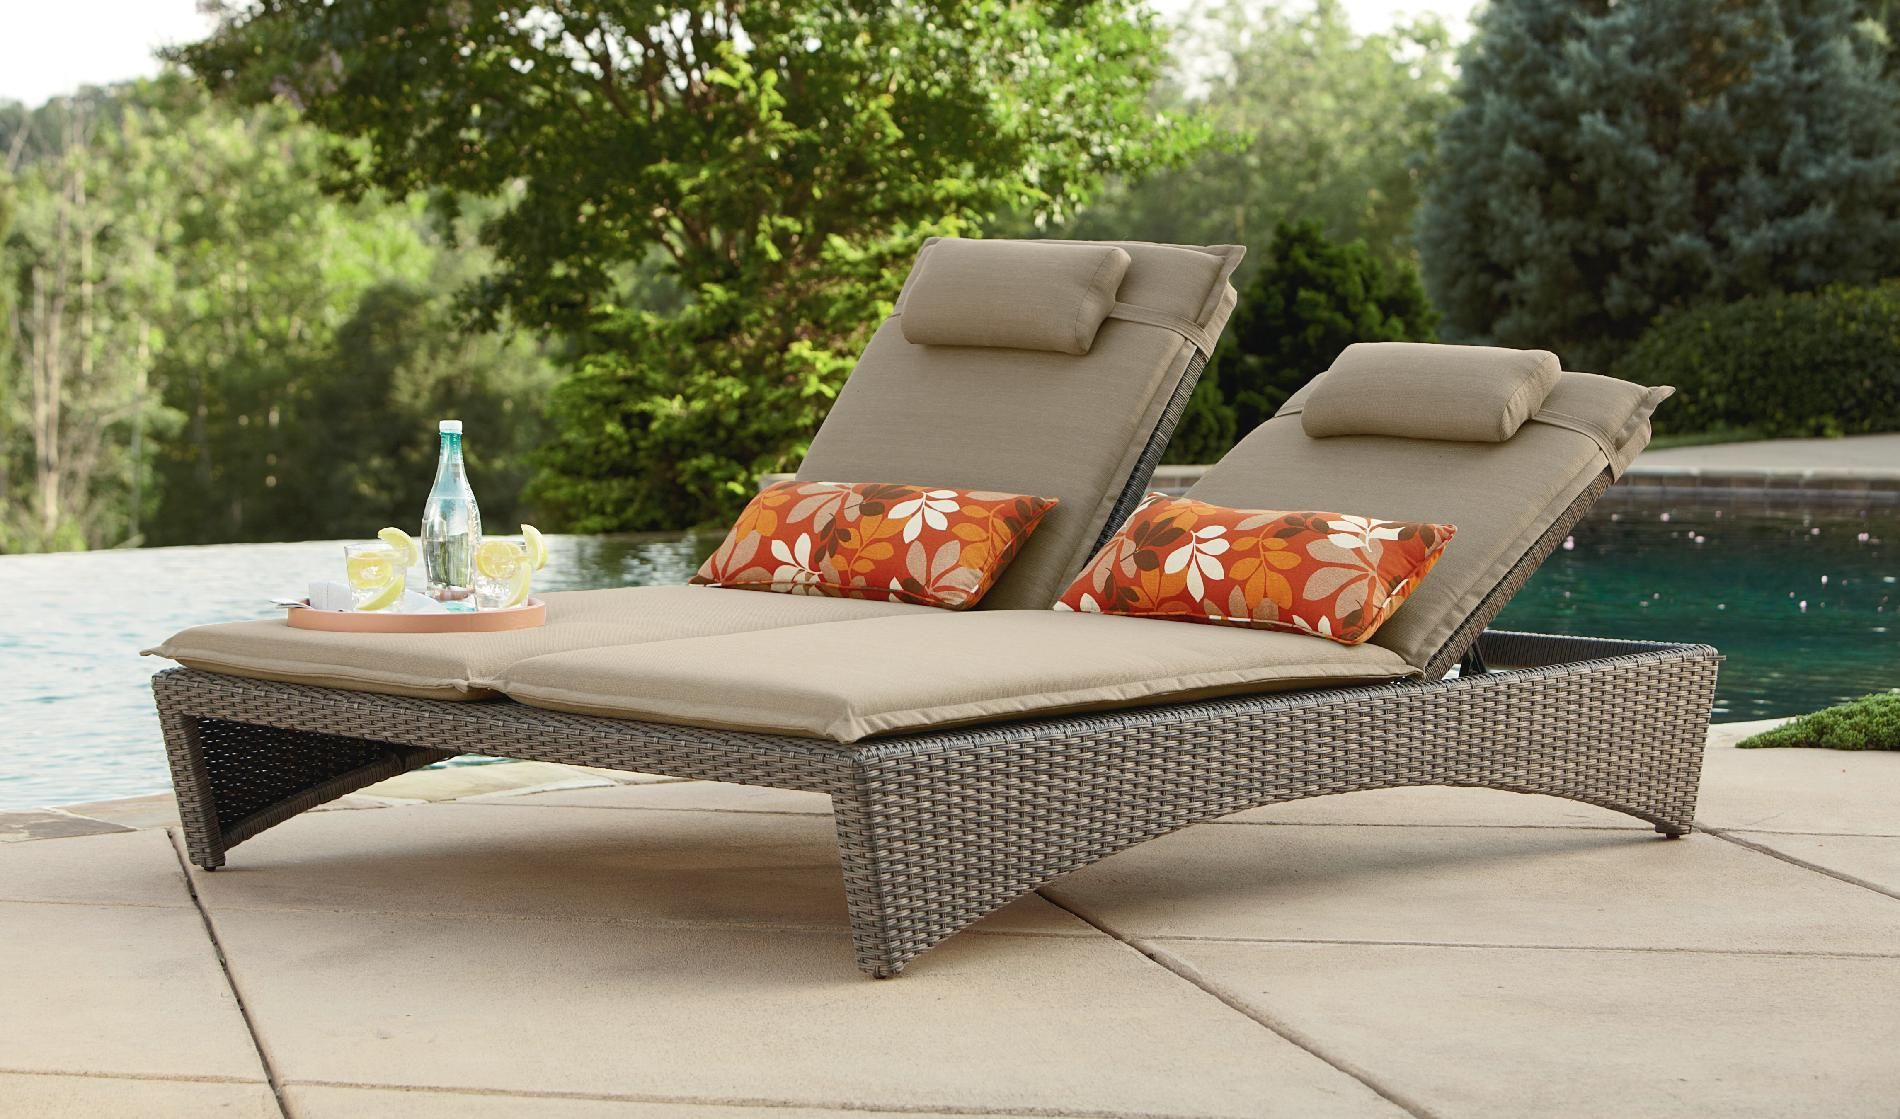 Ty Pennington Style Madison Double Chaise Lounge Outdoor Living Patio Furniture Pool Chaise Lounge Lounge